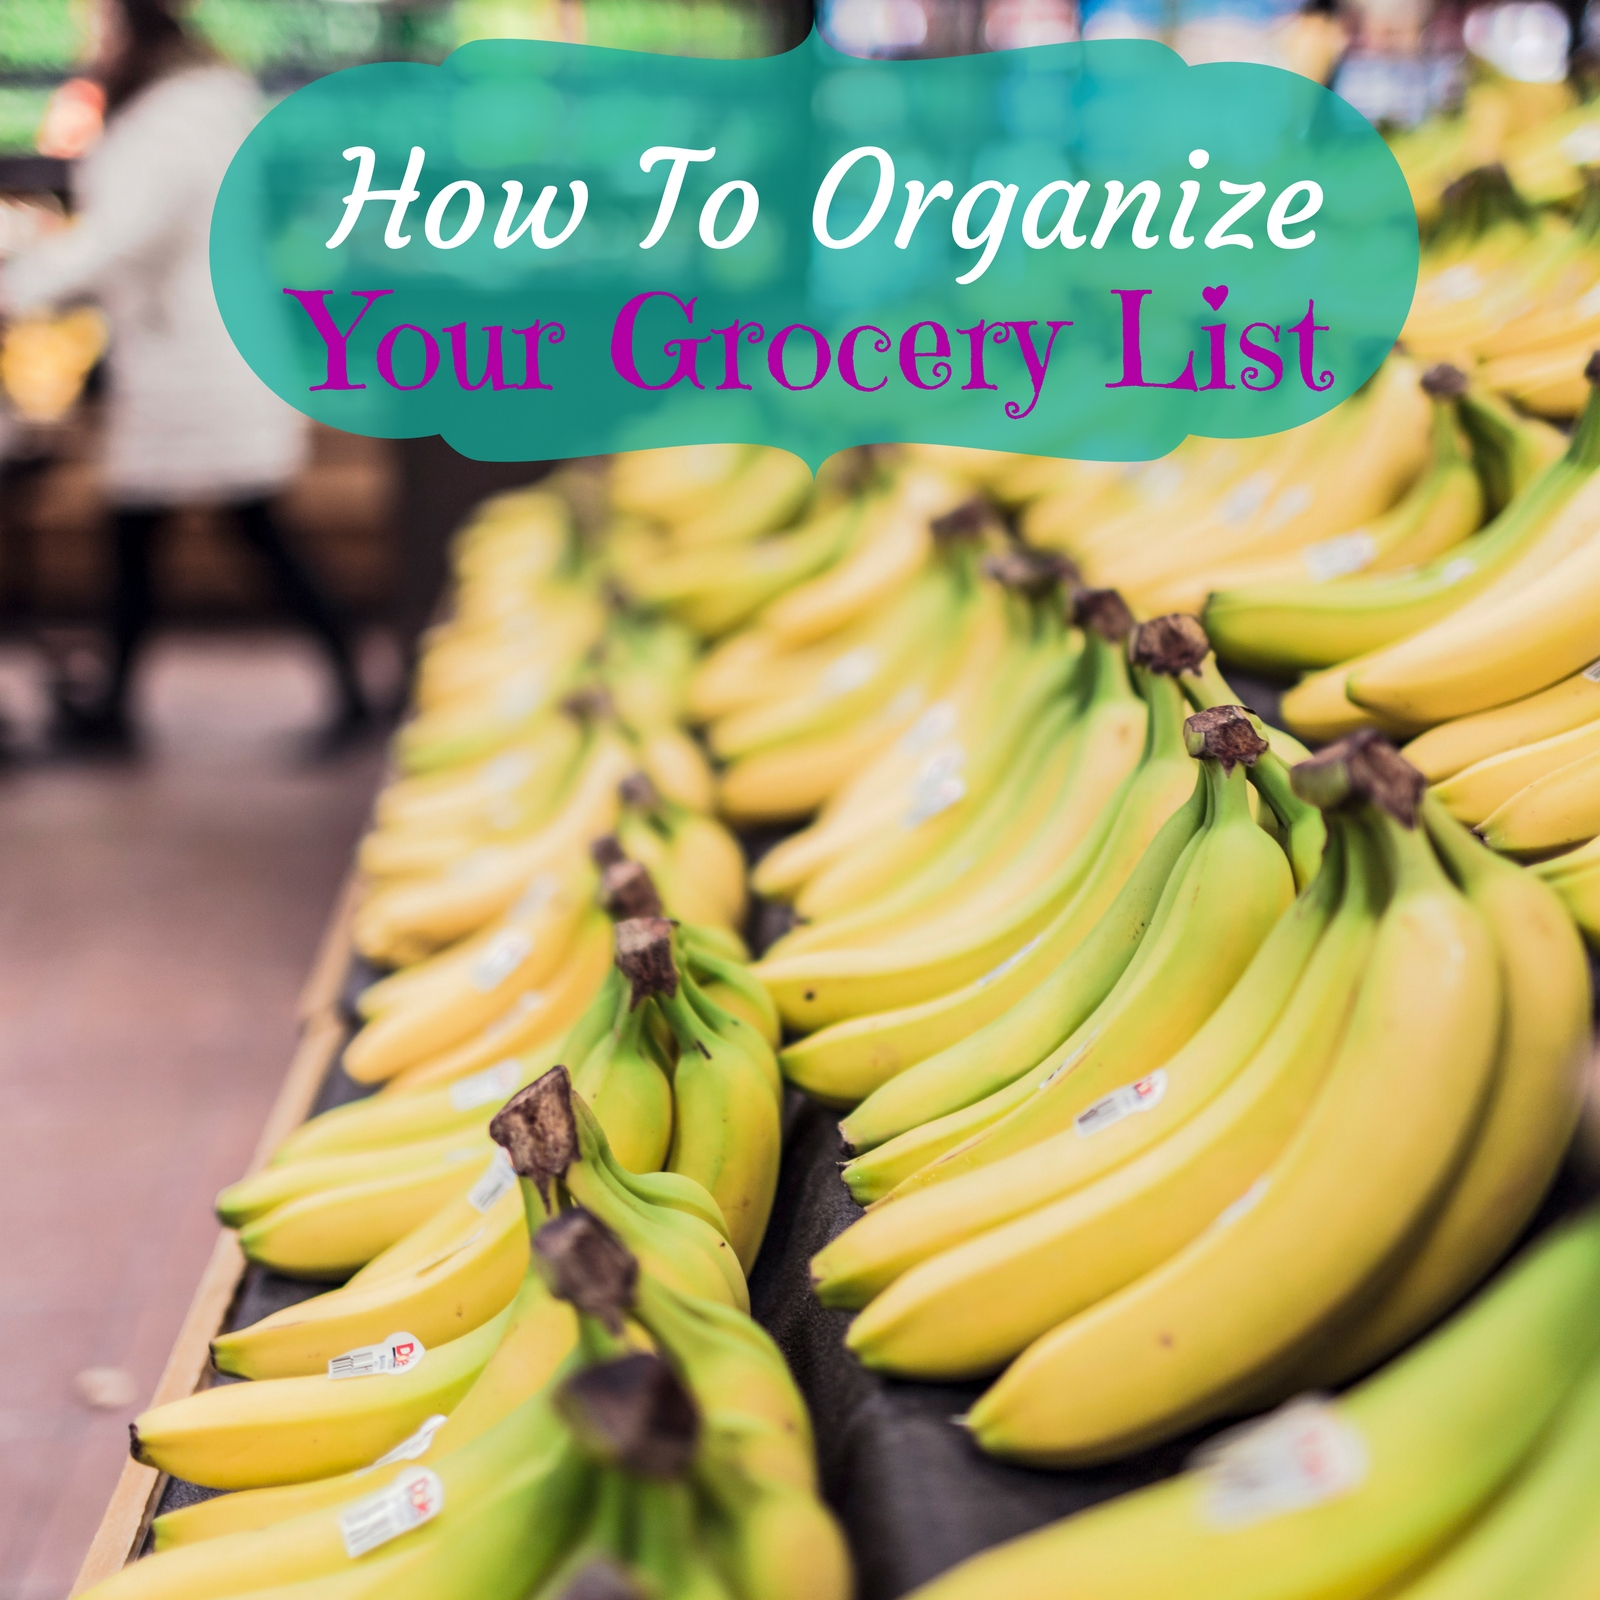 How to Organize Your Grocery List